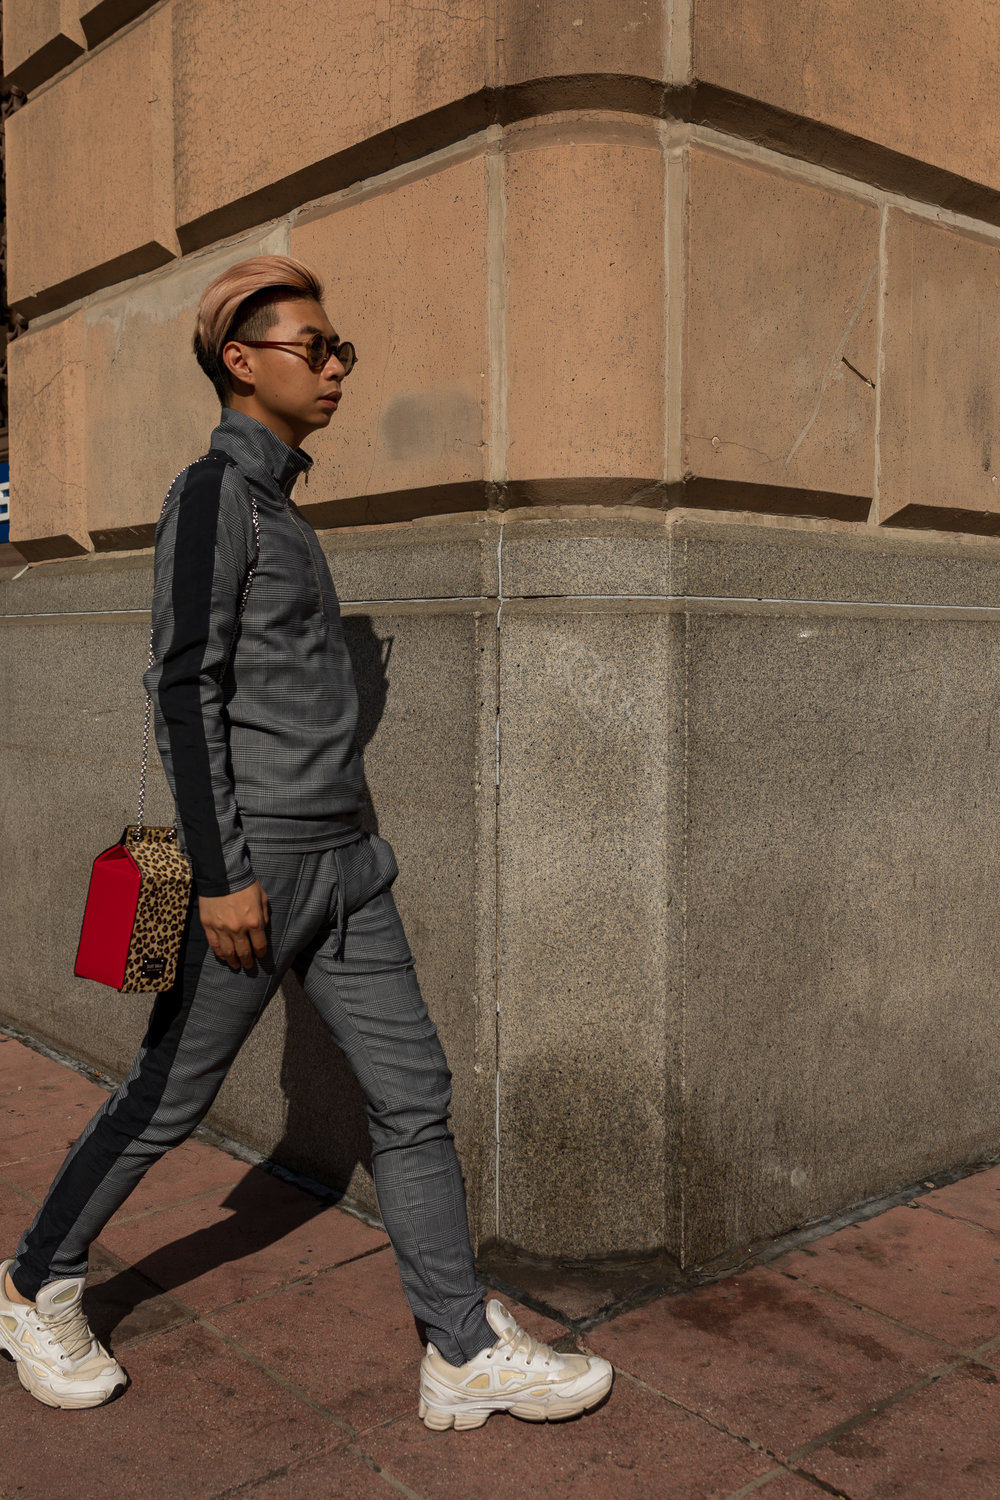 MYBELONGING-UBER-DOORS-ARE-ALWAYS-OPENING-DOWNTOWN-LOS-ANGELES-STREETSTYLE-PHOTOGRAPHY11.jpg